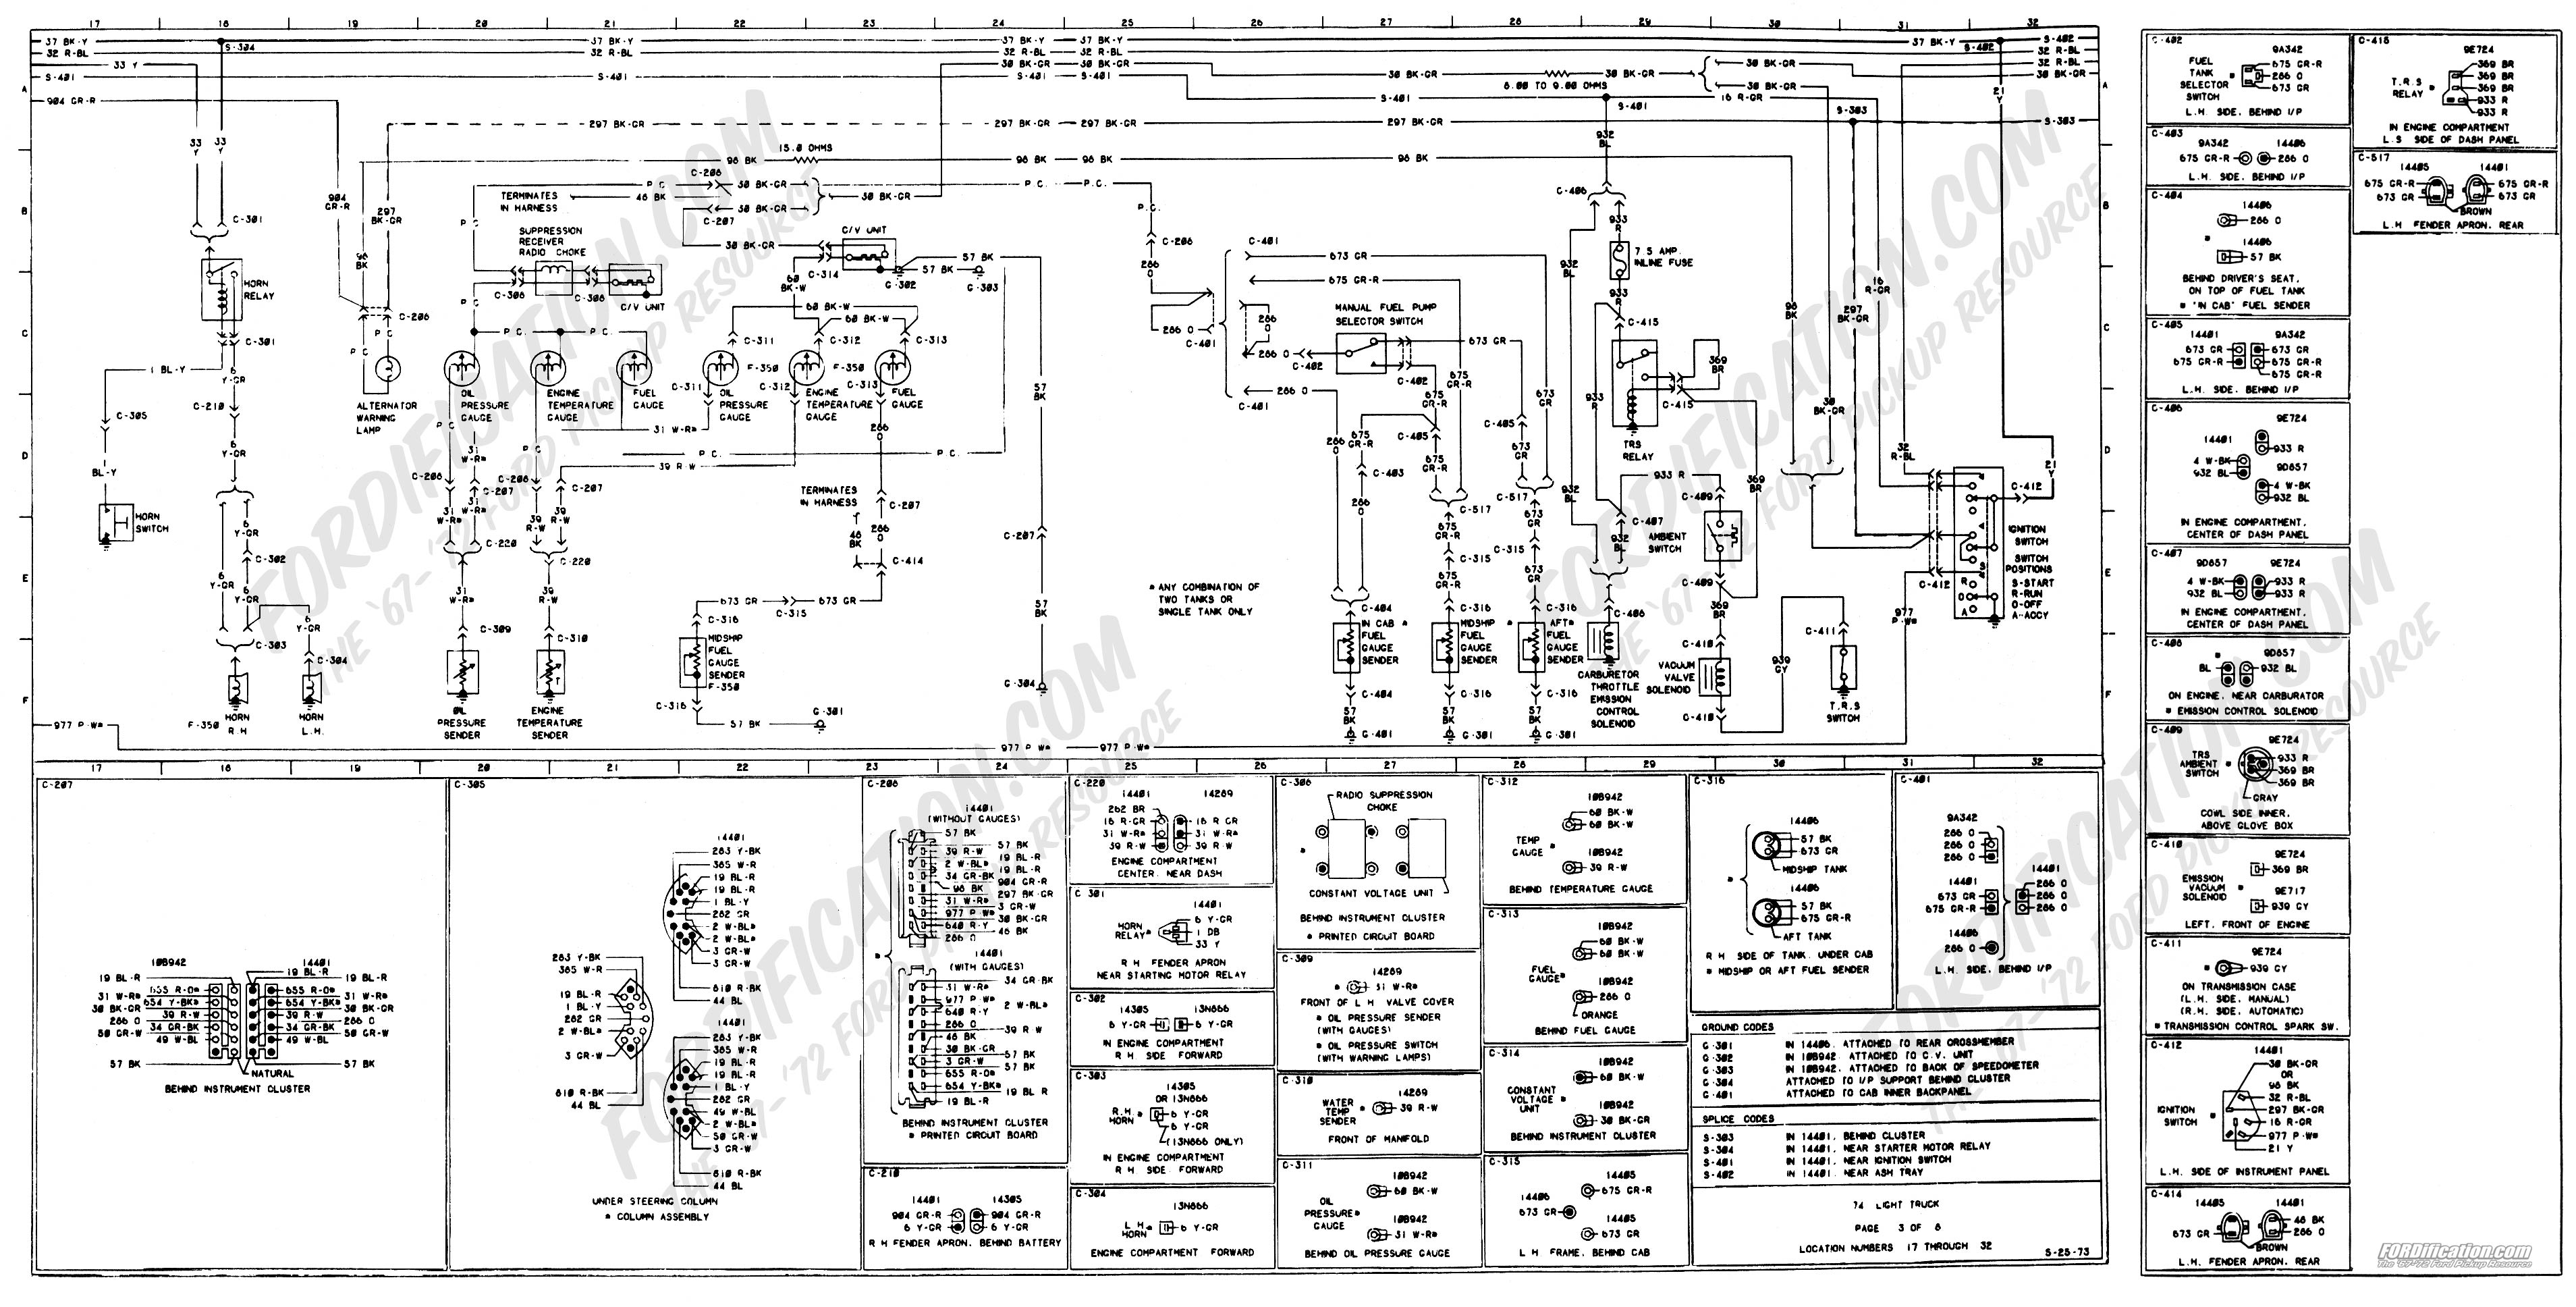 wiring_74master_3of8 1973 1979 ford truck wiring diagrams & schematics fordification net 1979 ford truck fuse box diagram at mifinder.co